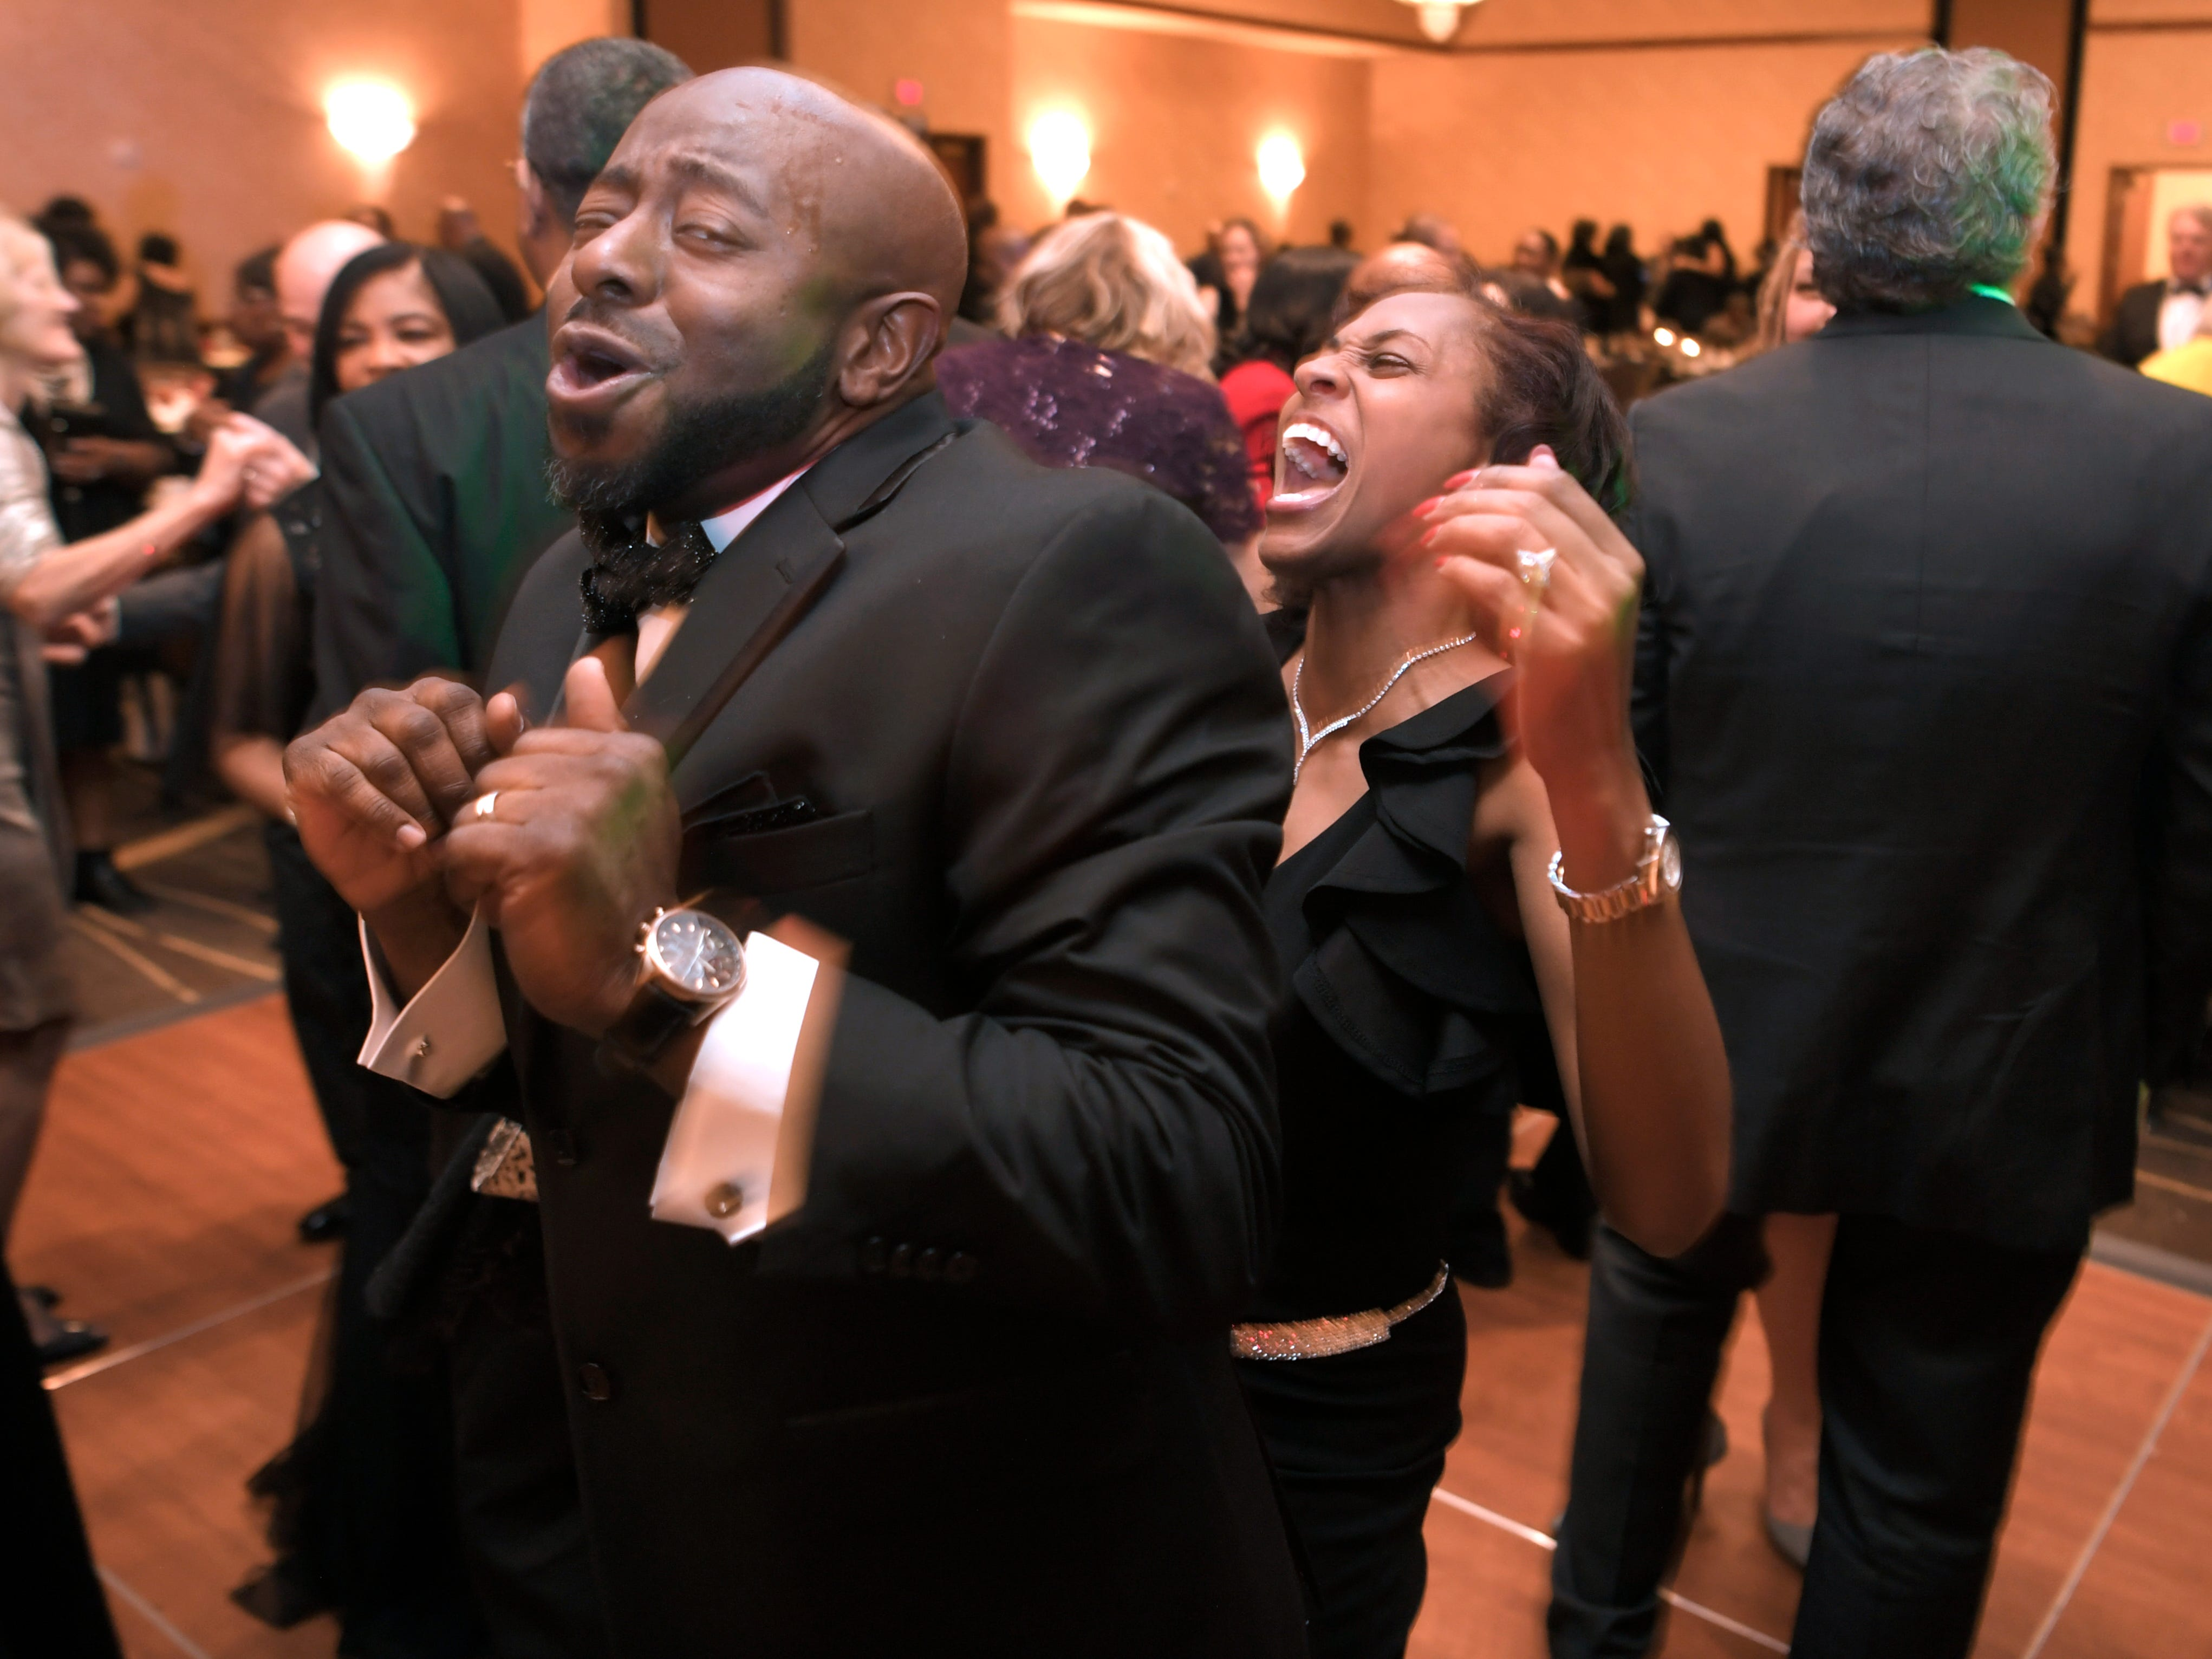 Anthony and Angela Fleming dance together at the African American Heritage Society's 18th Annual Black Tie Affair at the Embassy Suites in Franklin on Sat., Feb. 2, 2019.